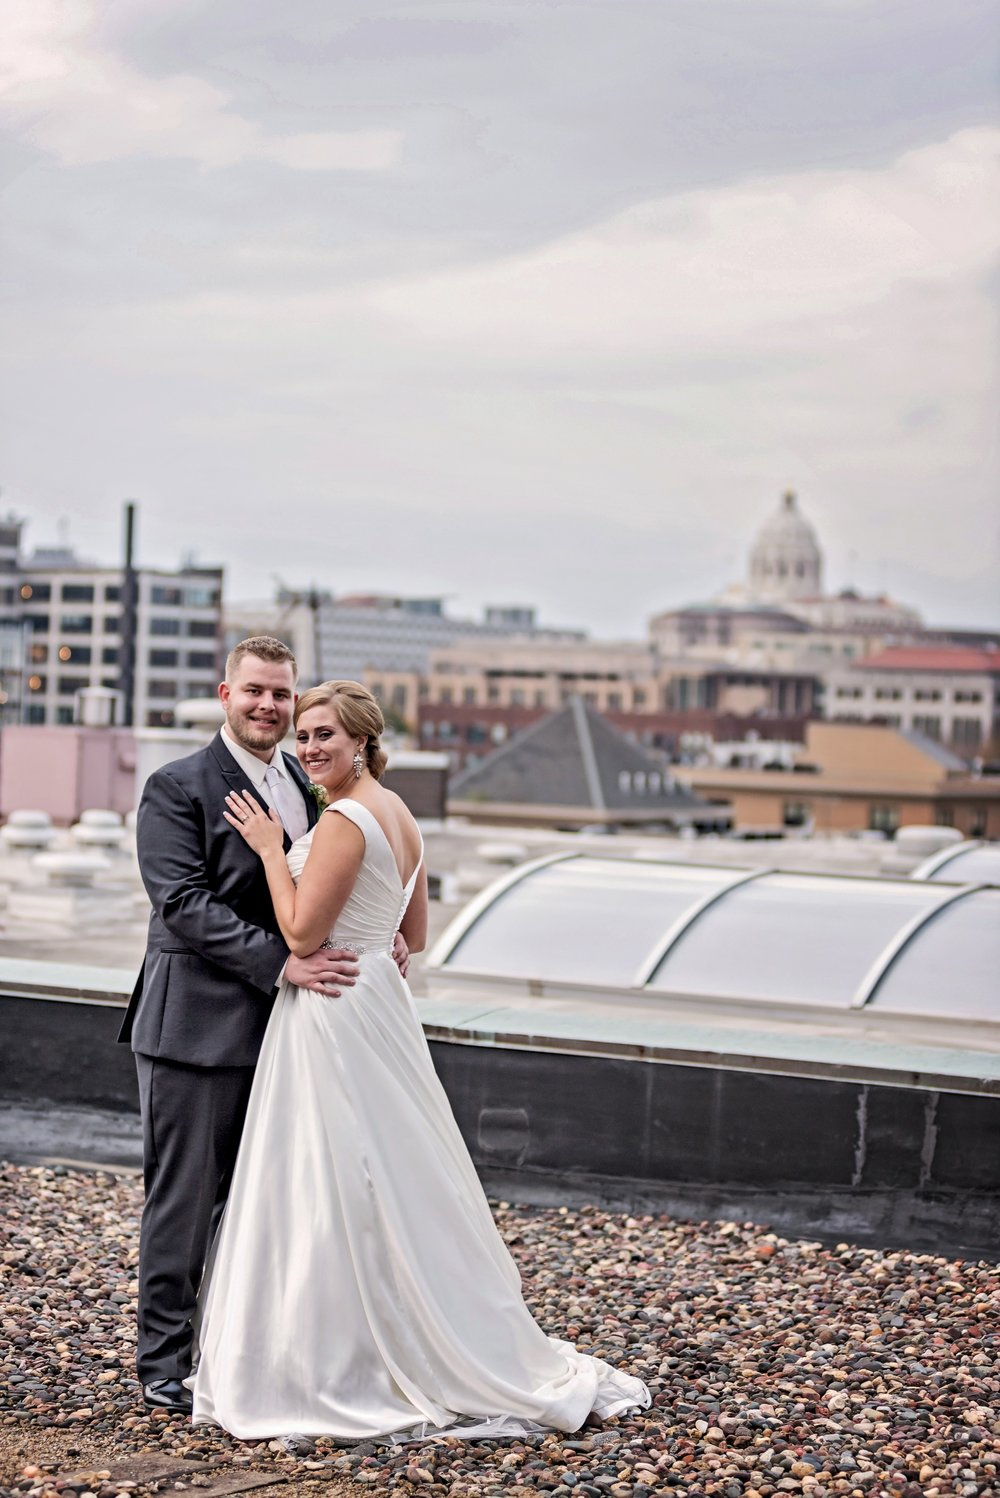 2018-Real-Wedding-Megan-Brenden-Rotella-Photography_0497.jpg